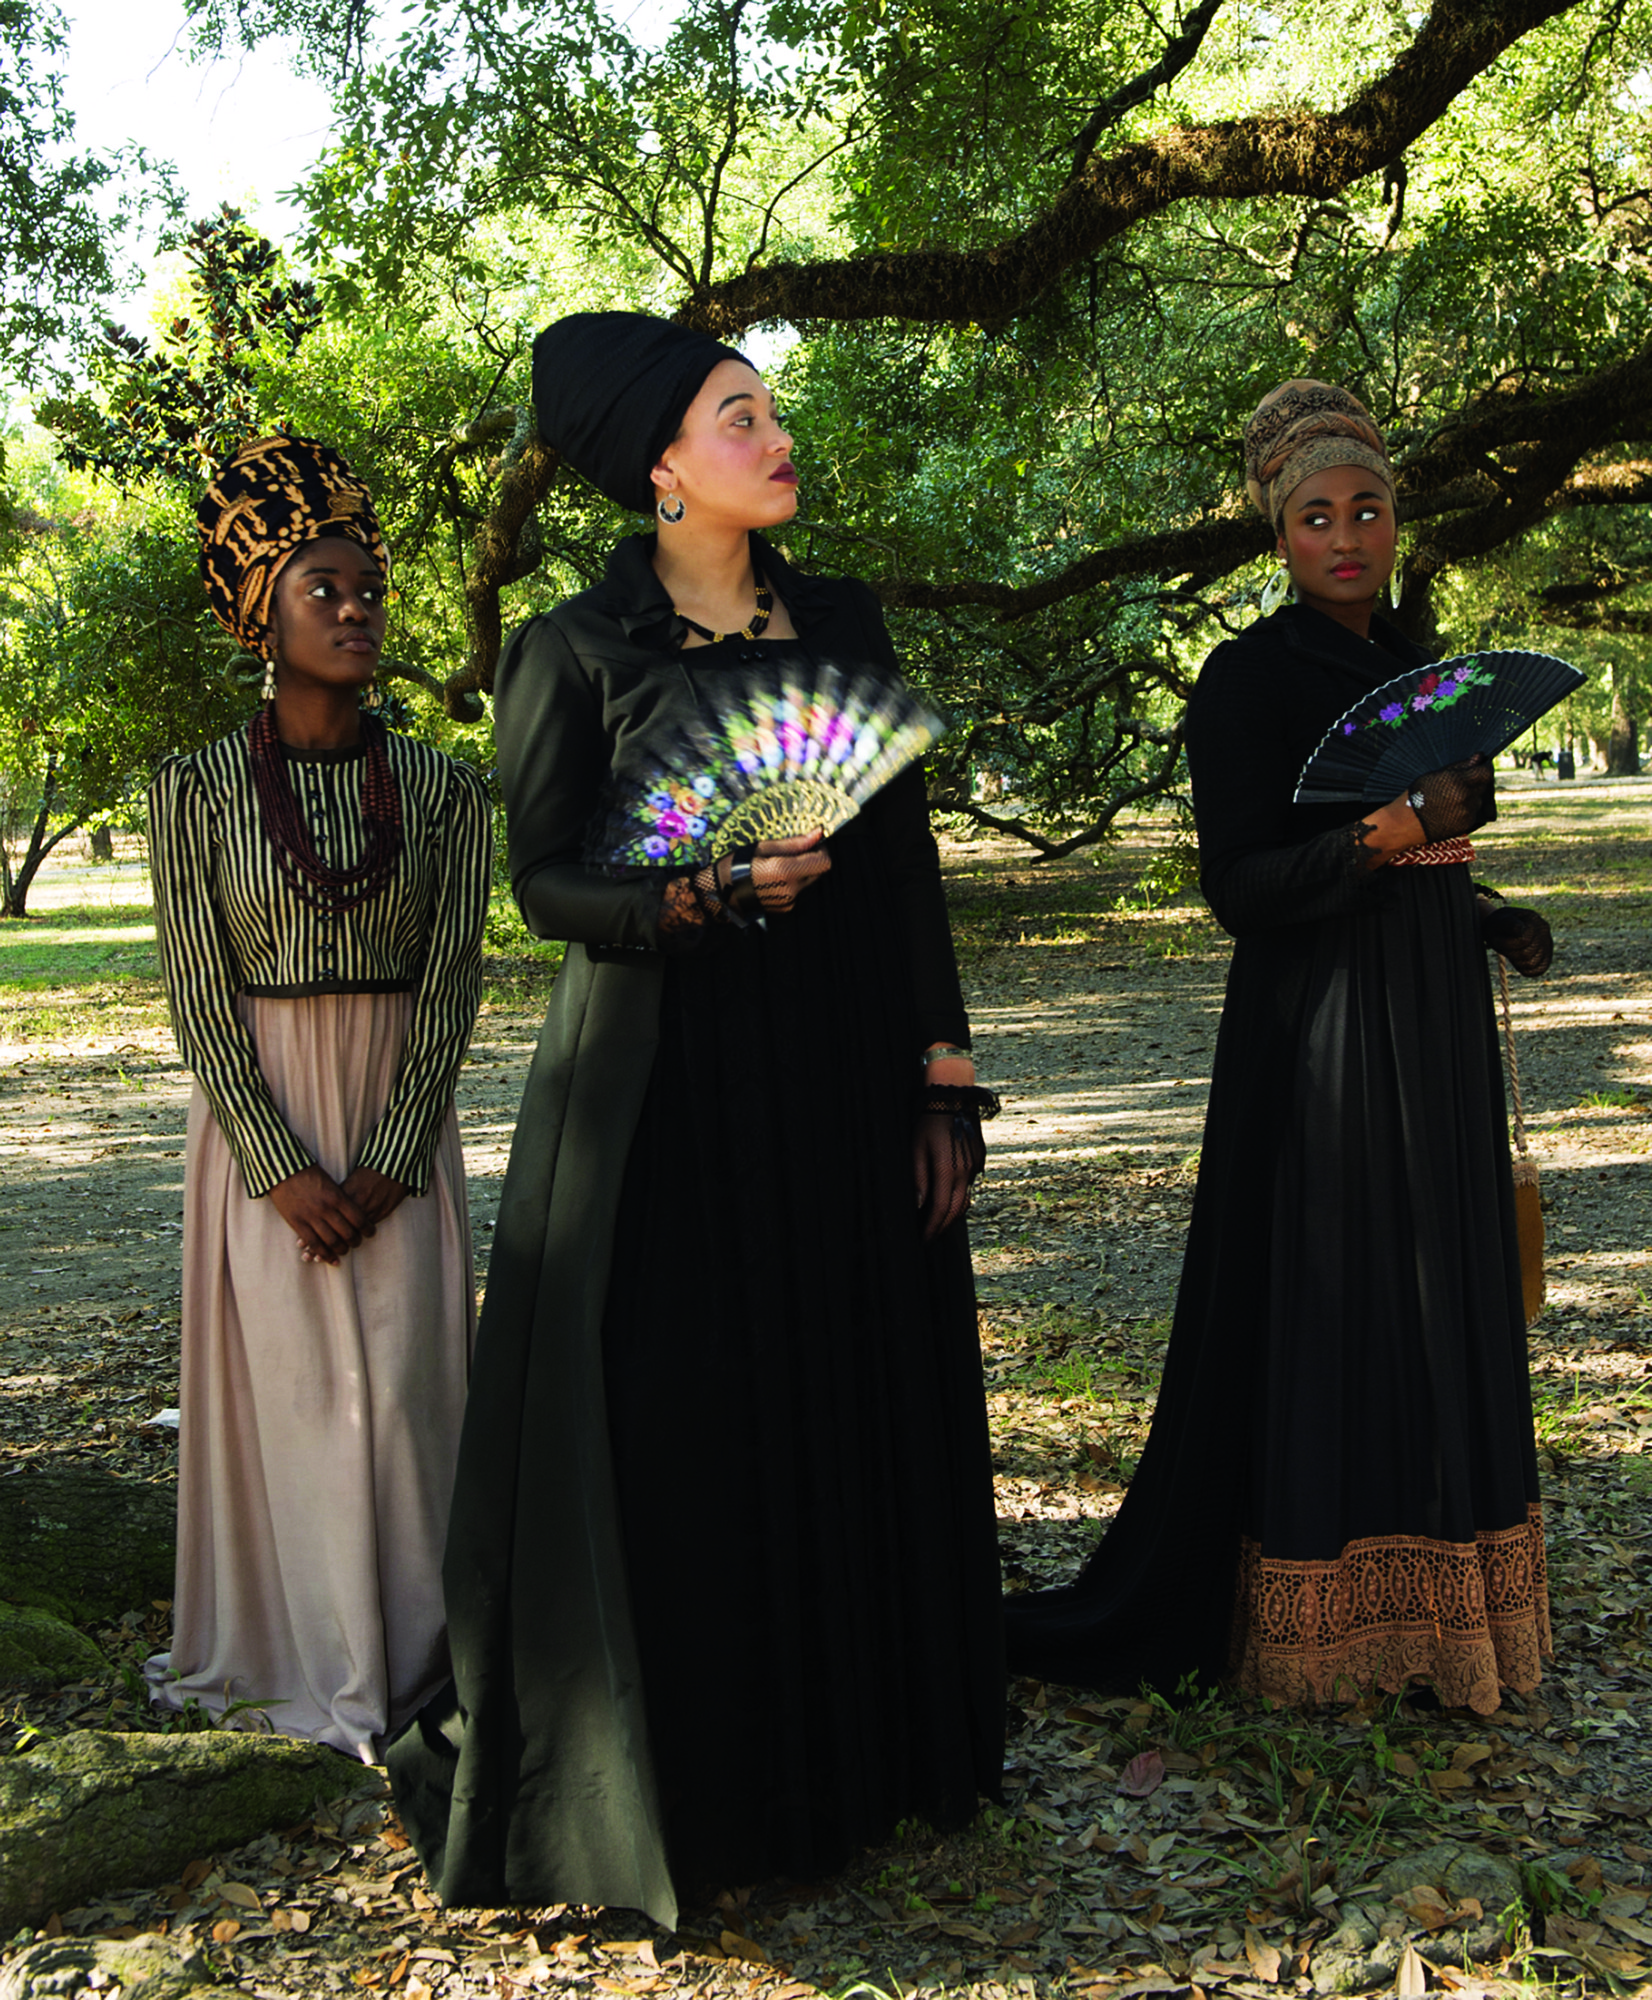 Asia Allen as Le Veuve, Saisha Lee as Makeda, and Kelsey Reine as Beatrice in costume for House That Will Not Stand, the play they star in along with several others. Photo credit: Kyle Encar